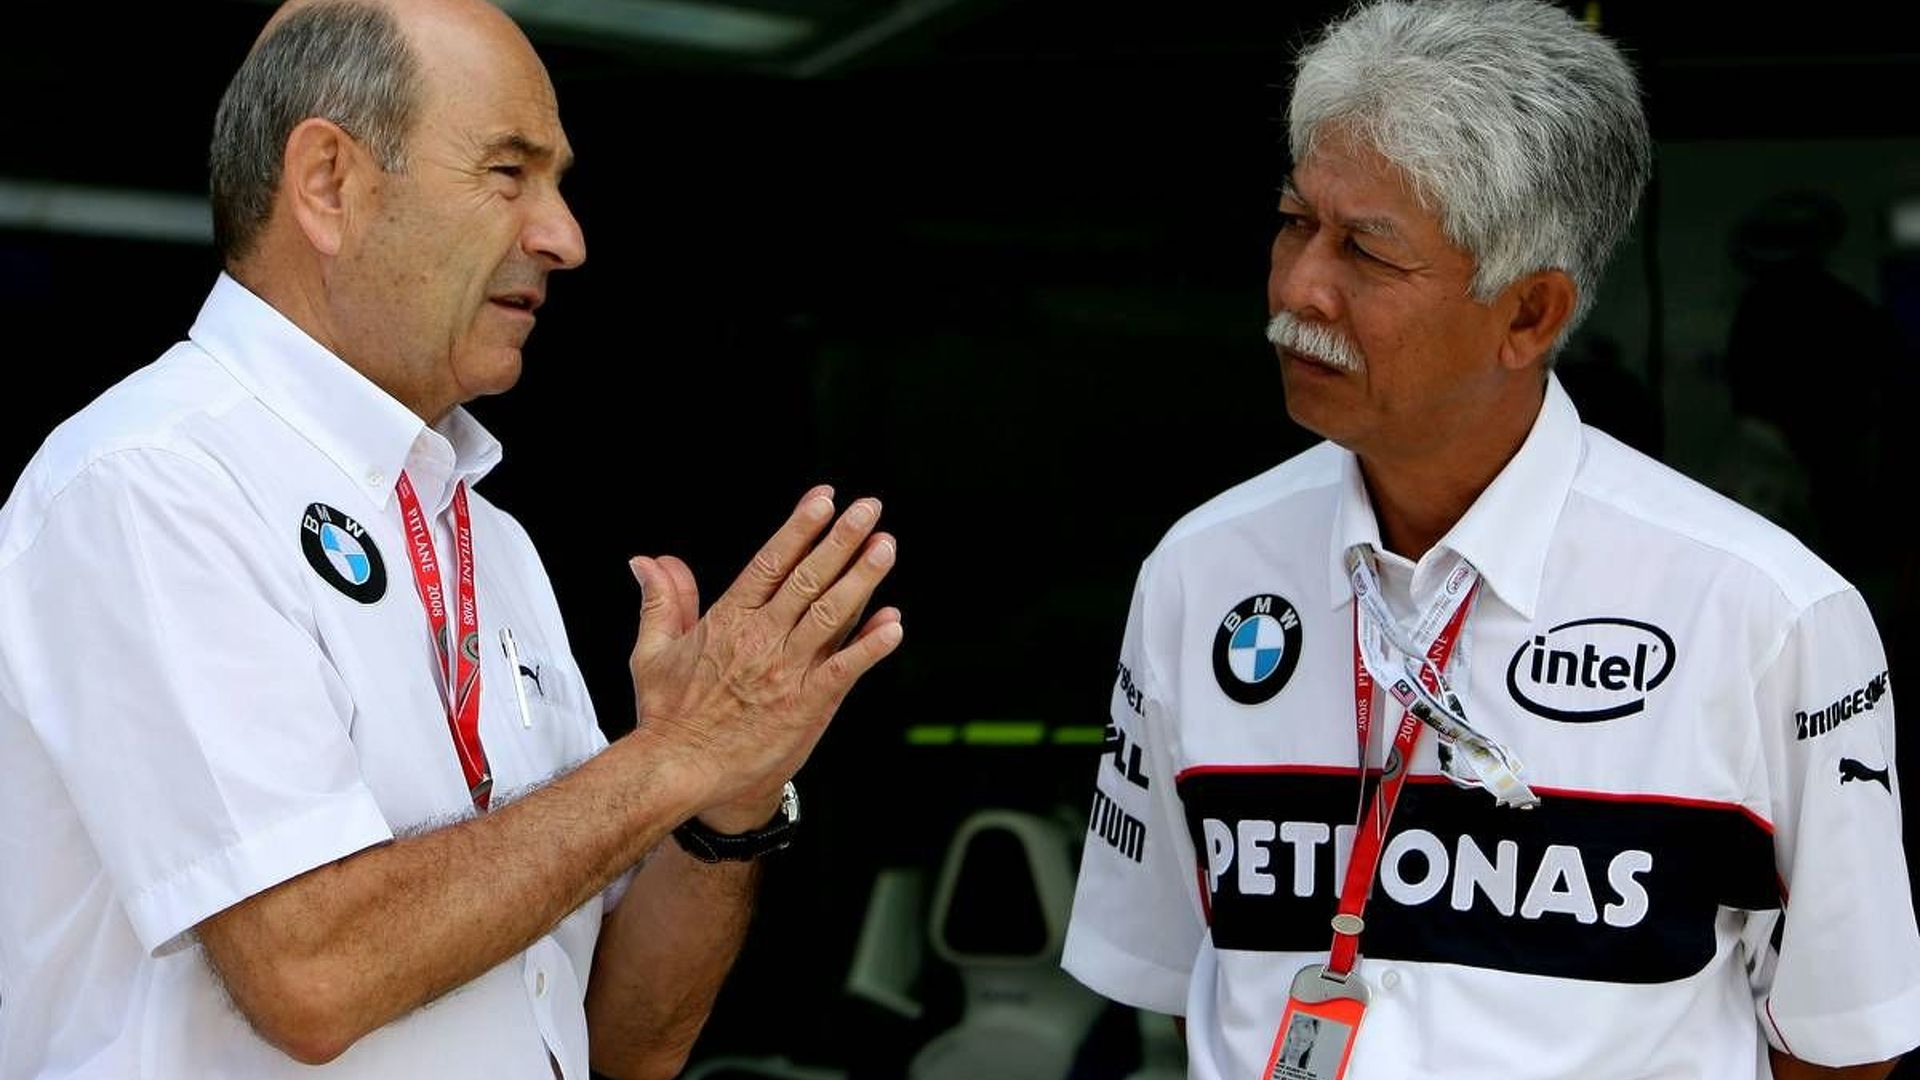 Petronas to stay with Sauber - report